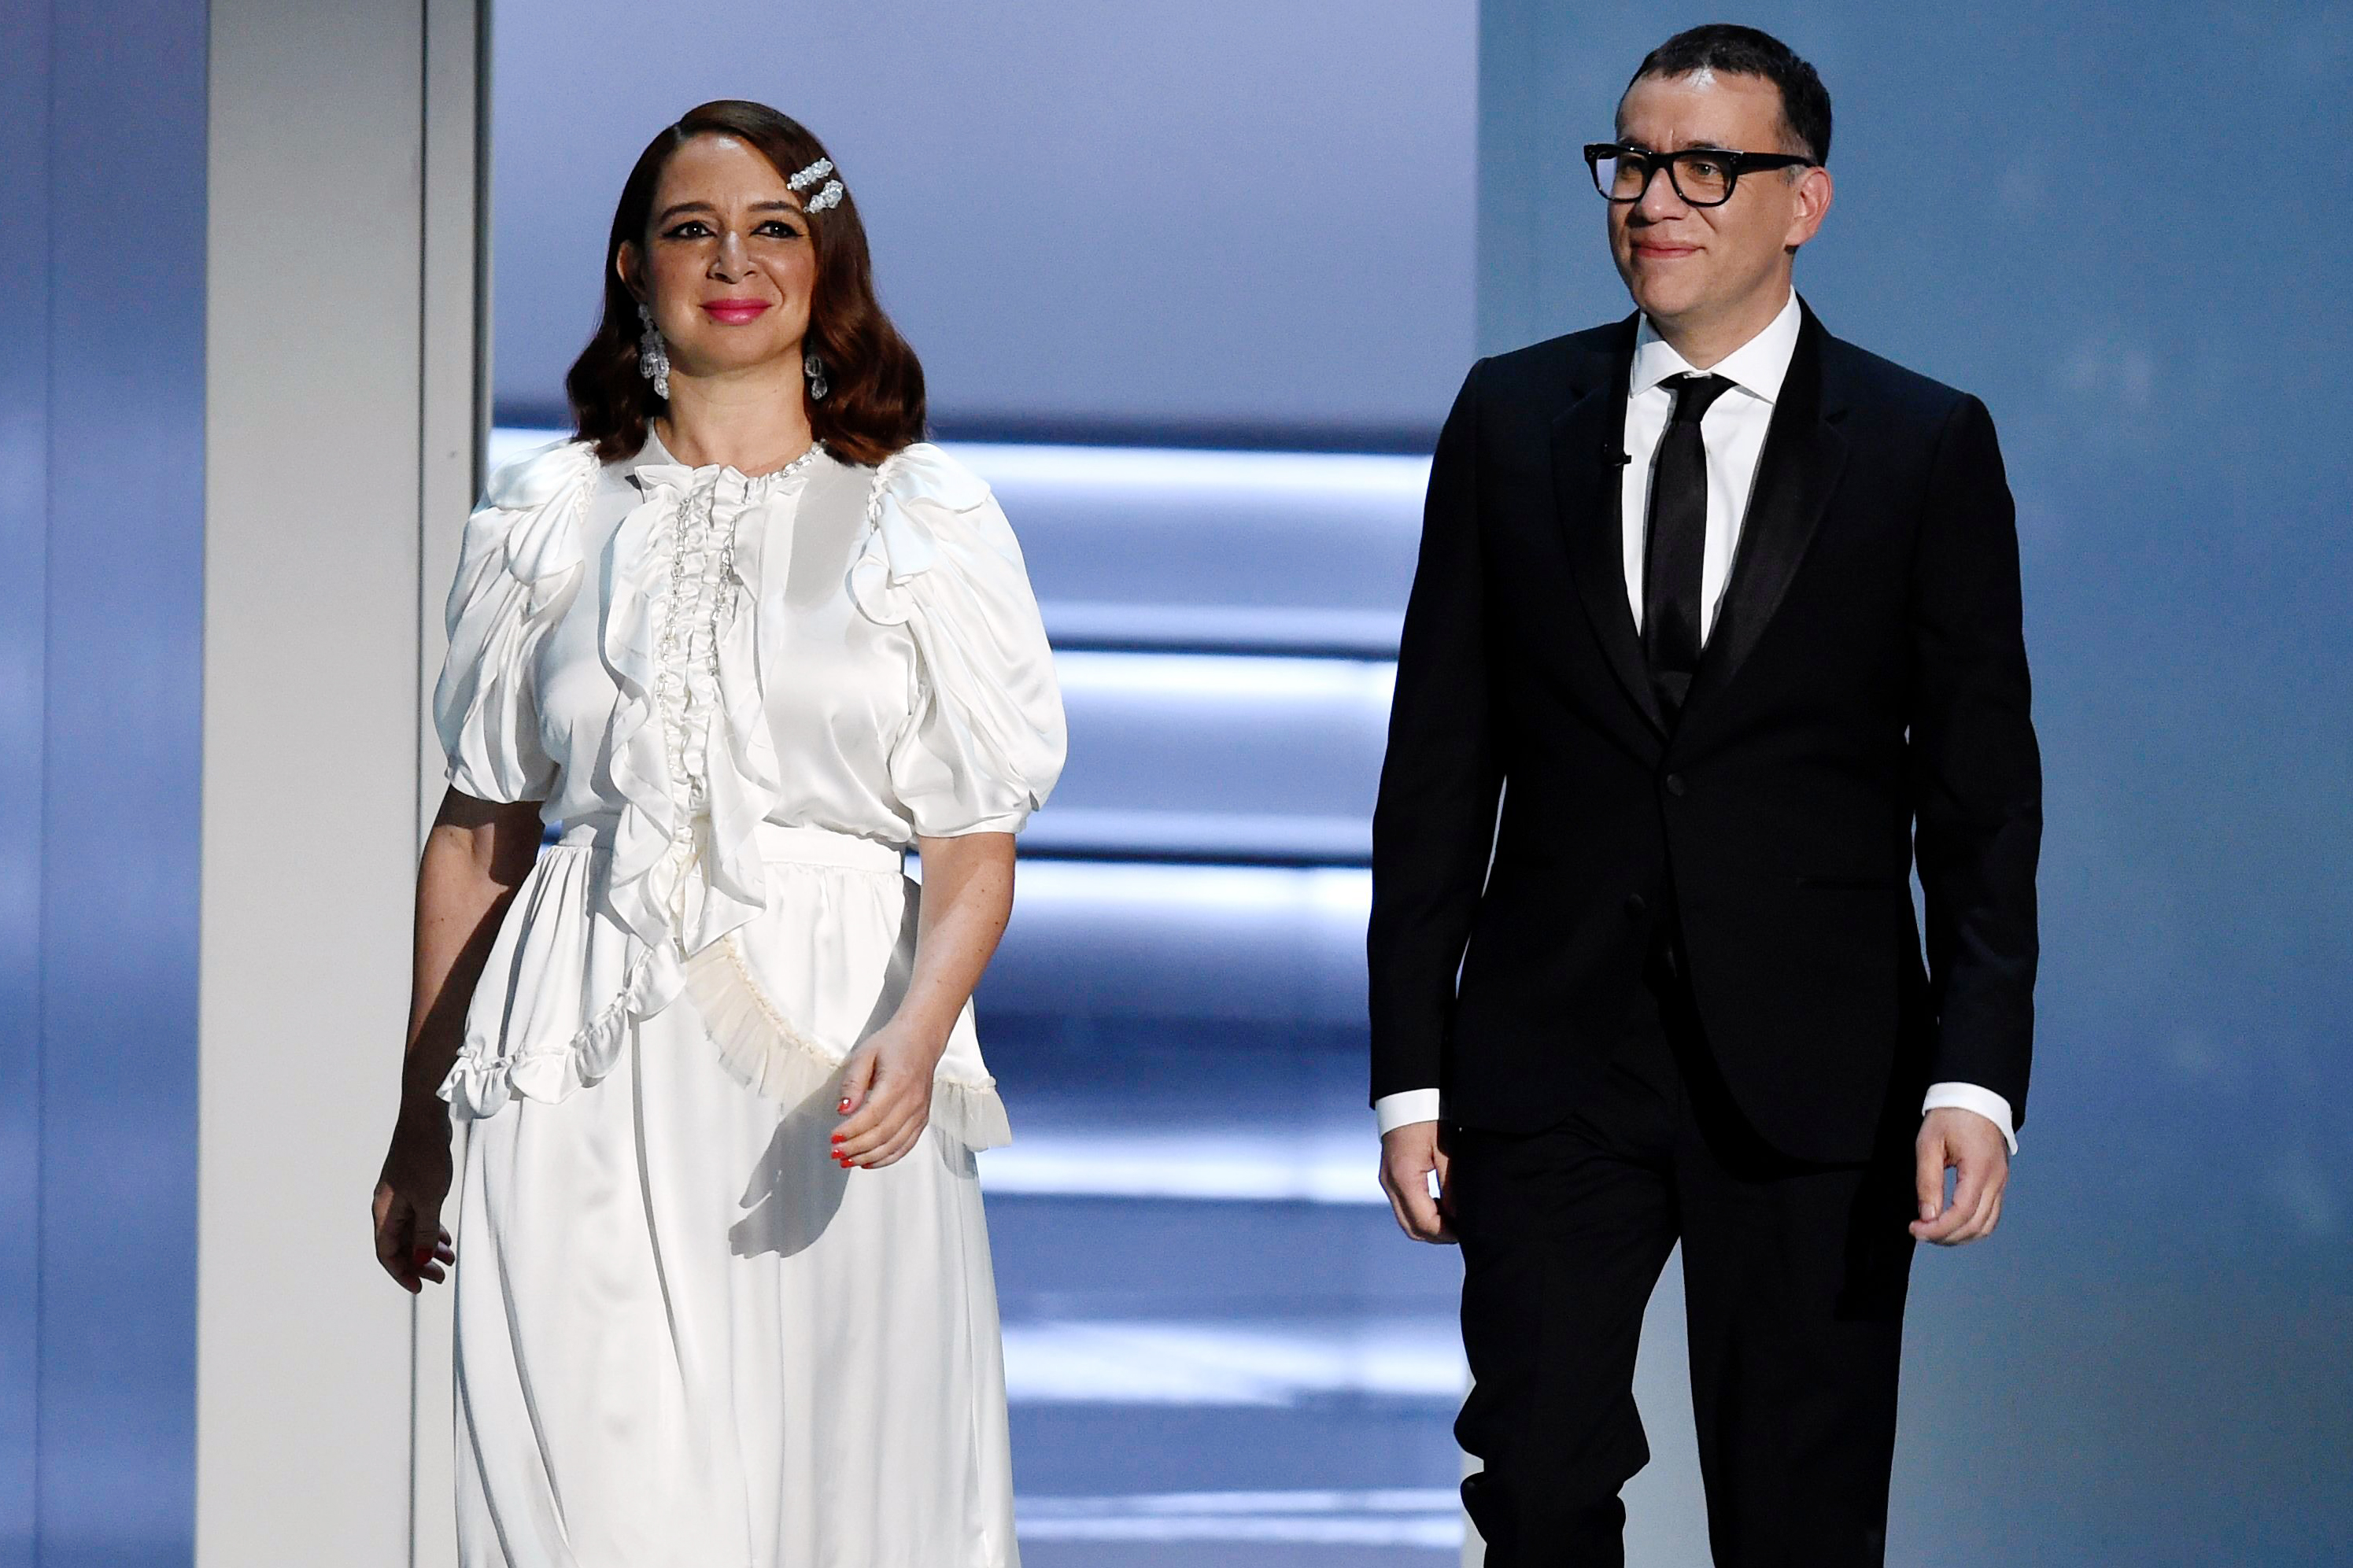 Fred Armisen, Maya Rudolph. Maya Rudolph, left, and Fred Armisen appear on stage at the 70th Primetime Emmy Awards, at the Microsoft Theater in Los Angeles2018 Primetime Emmy Awards - Show, Los Angeles, USA - 17 Sep 2018